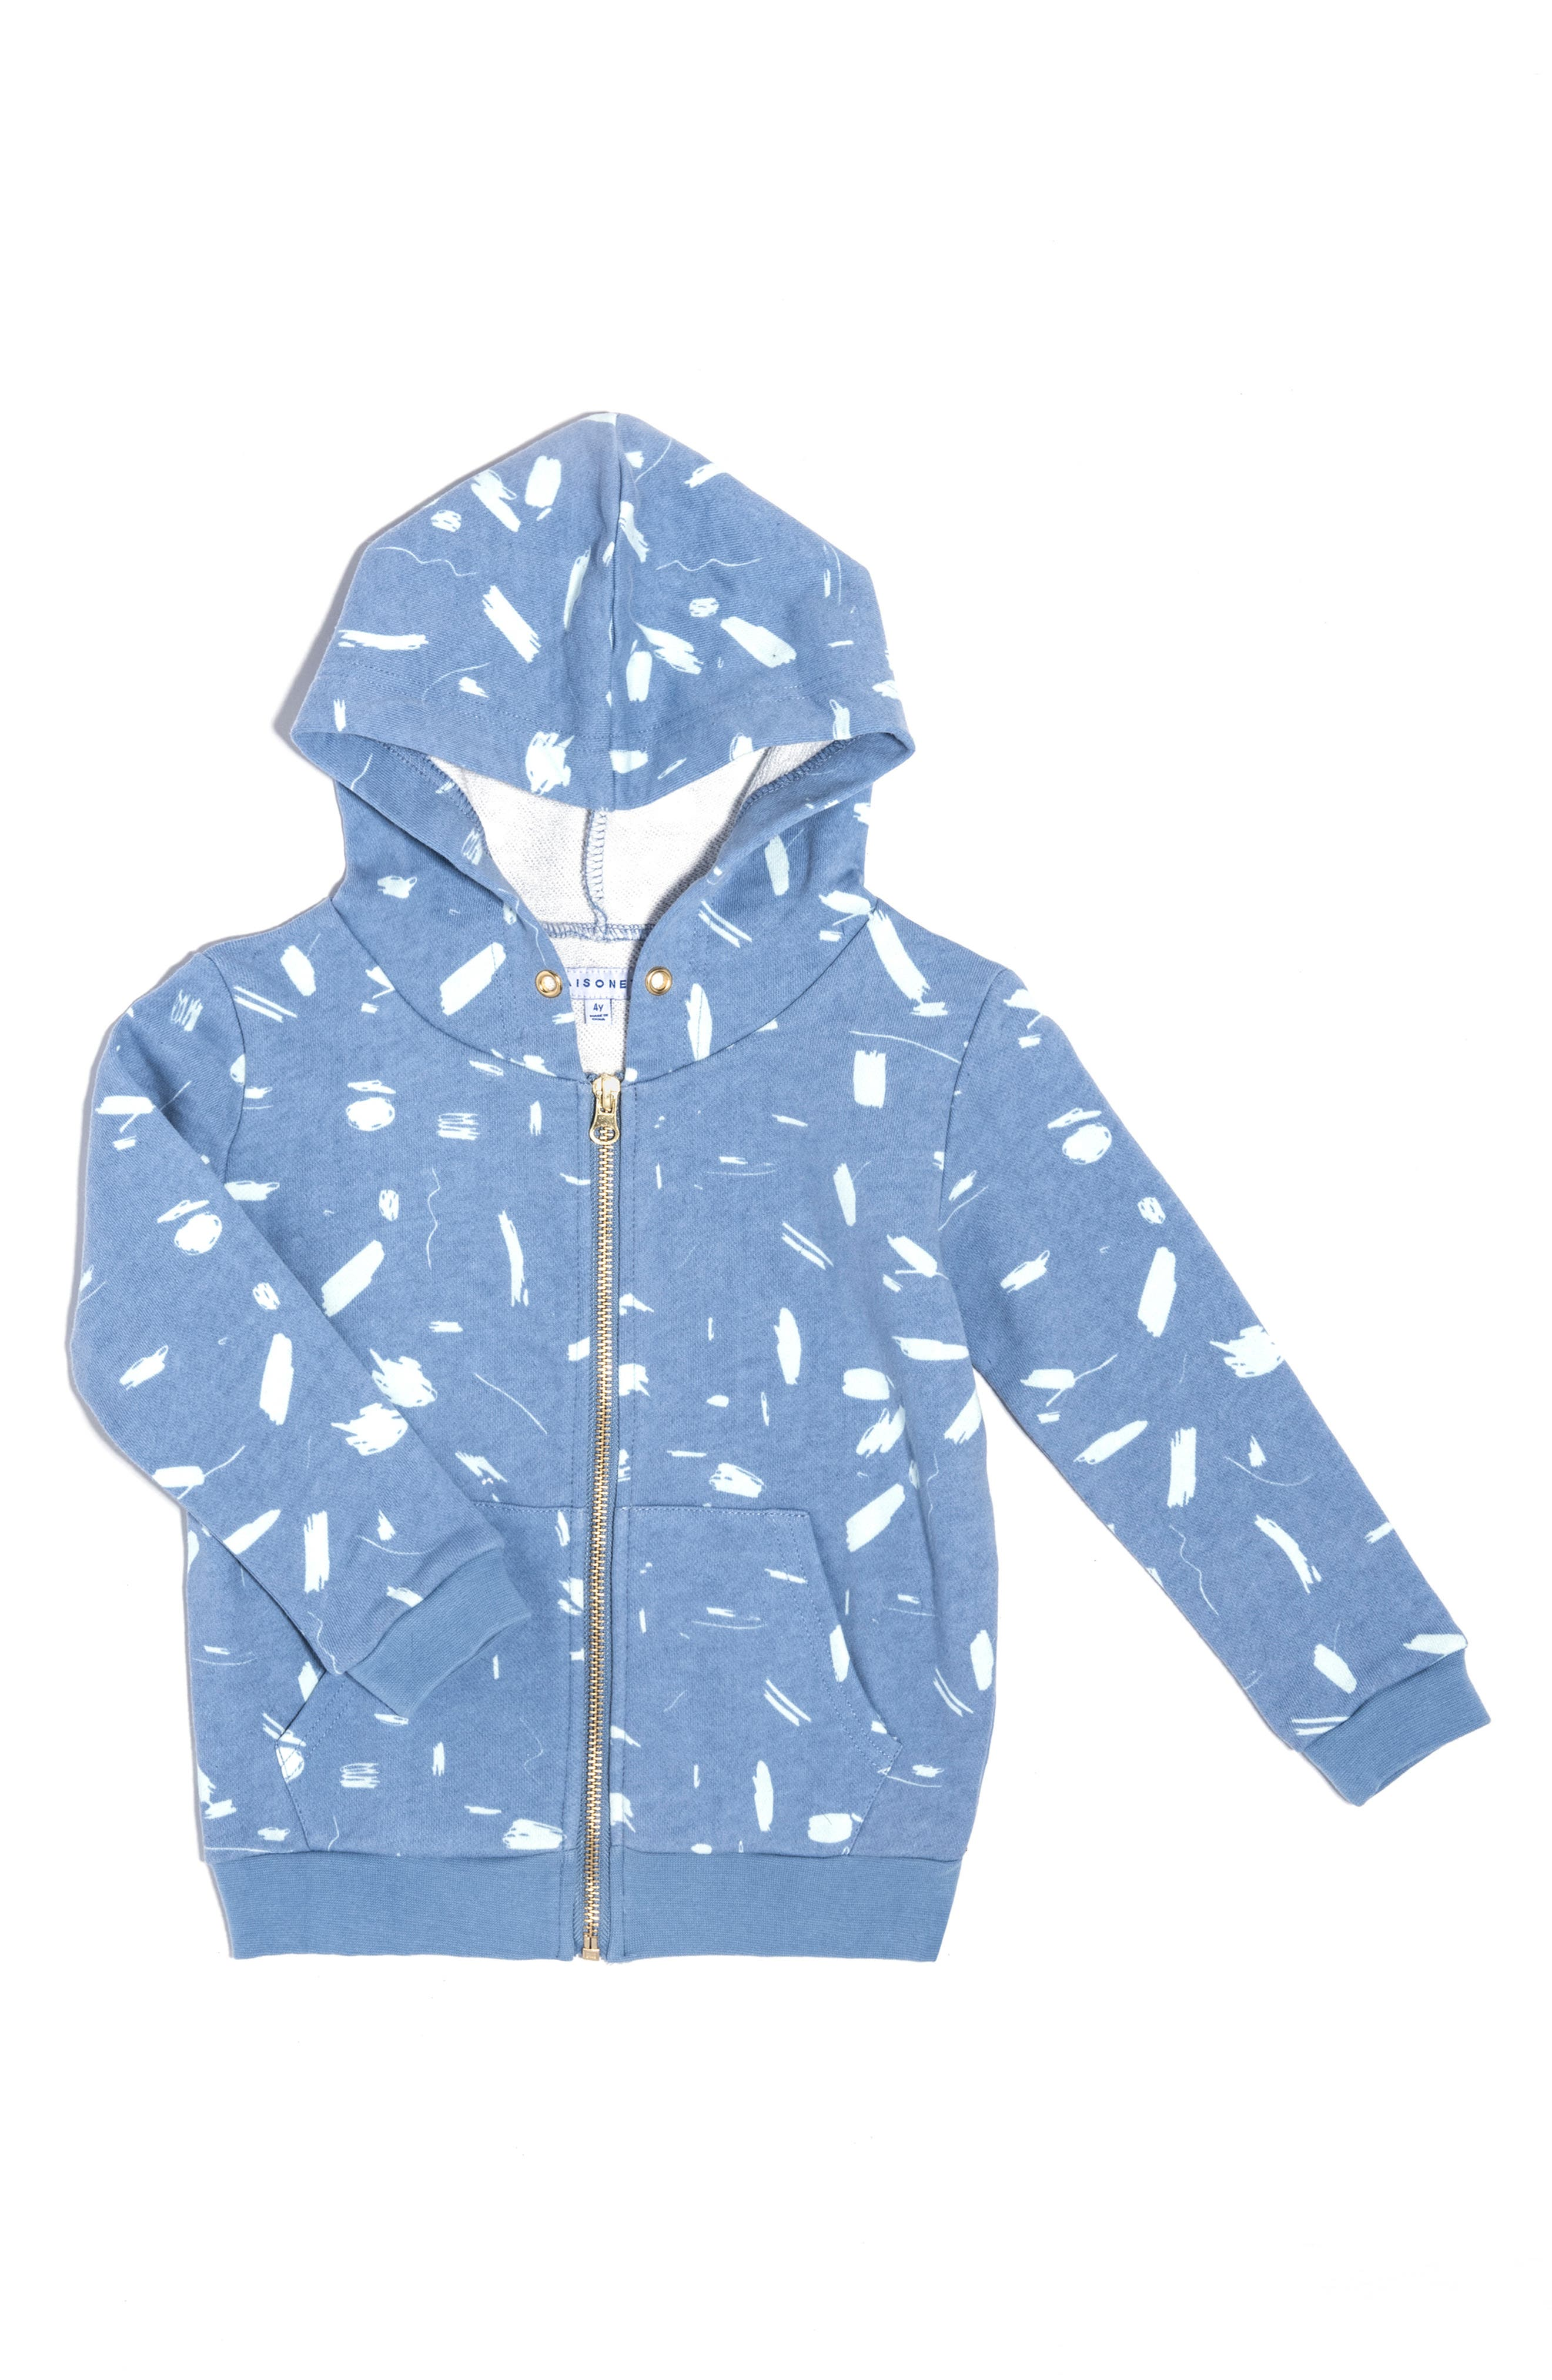 Toddler Maisonette Doodle Collection Hoodie Size 2Y  Blue